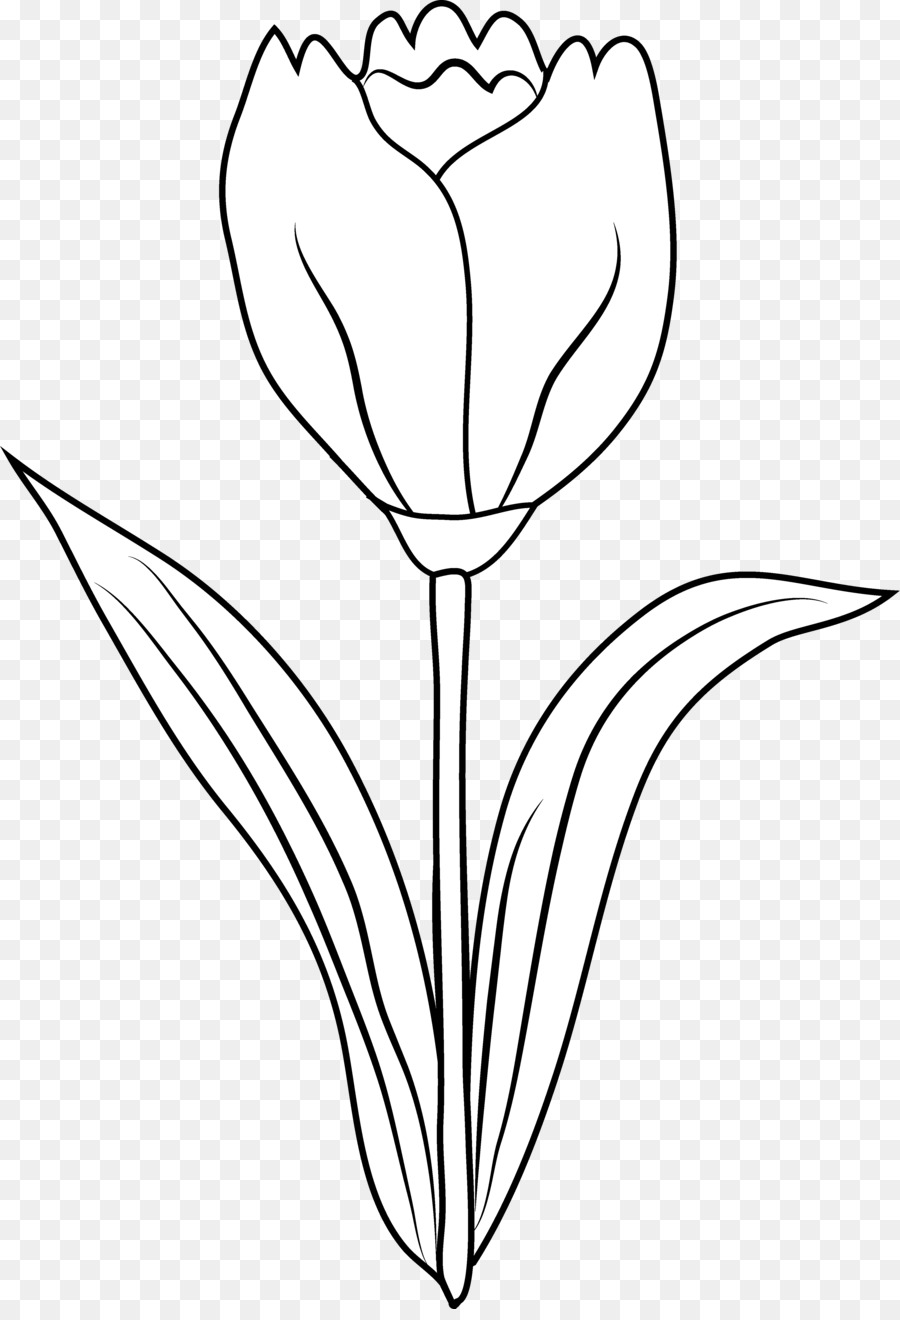 Drawing of tulips clipart picture black and white stock Tulip clipart black and white 4 » Clipart Station picture black and white stock